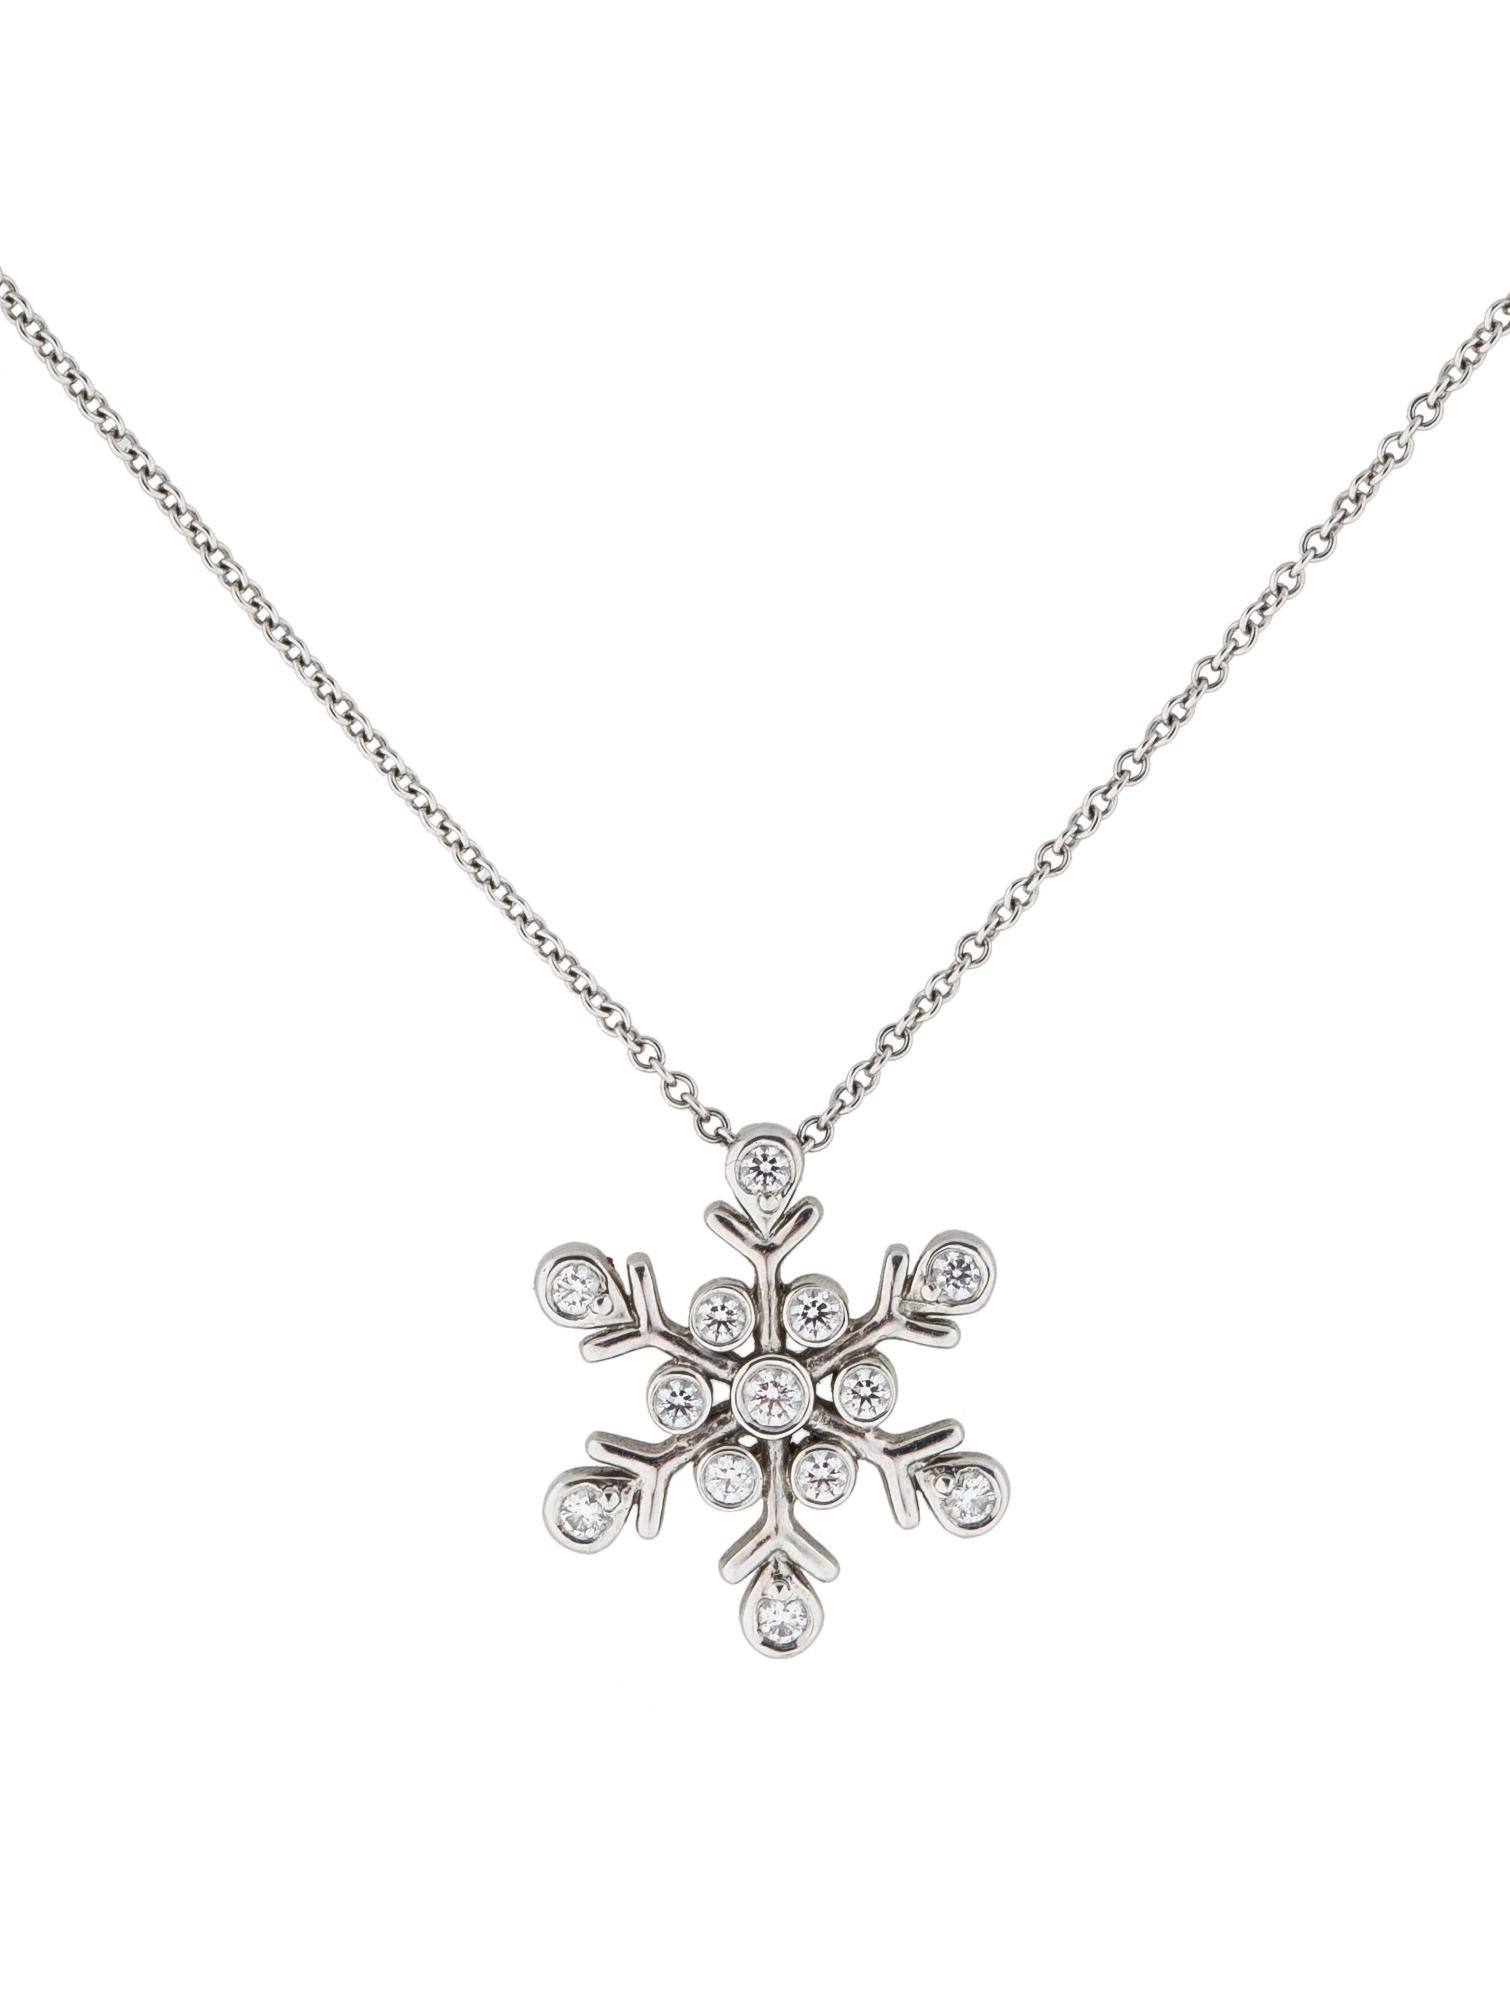 silver hanl jewelry snowflake com diamond pendant necklace amazon dp white carat gold